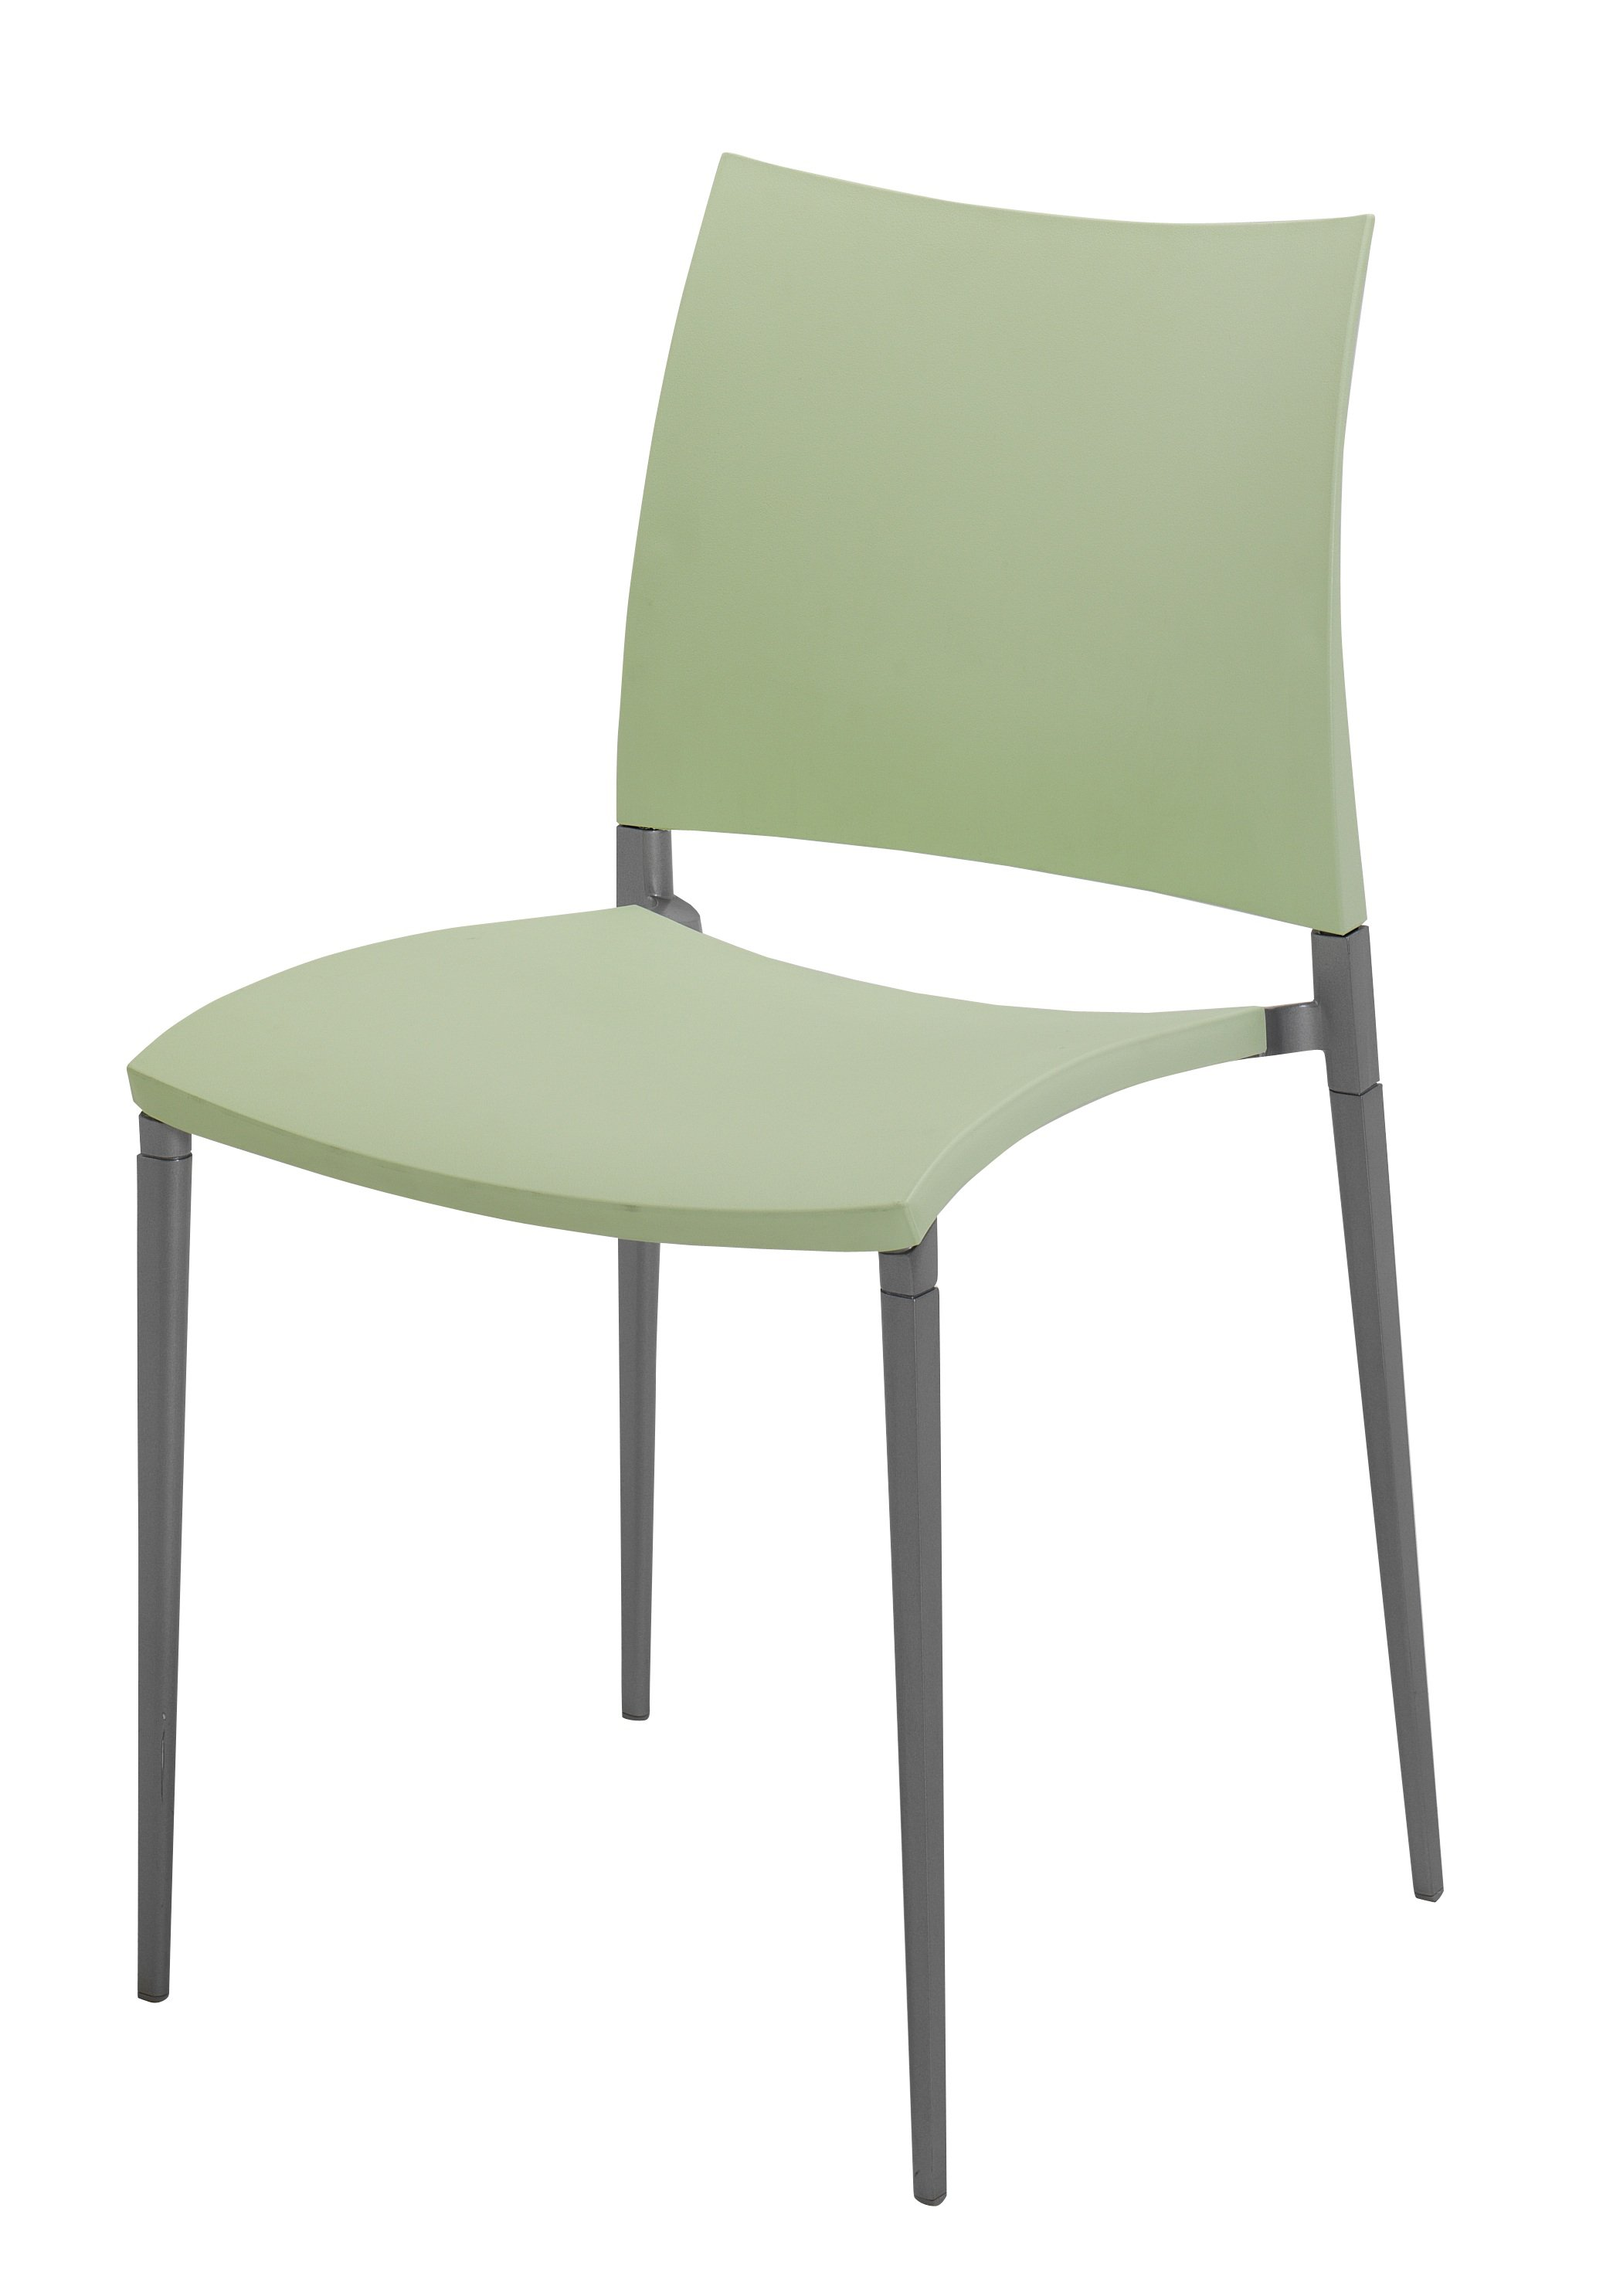 Chaise eldeon chaises mobilier terrasse for Mobilier terrasse